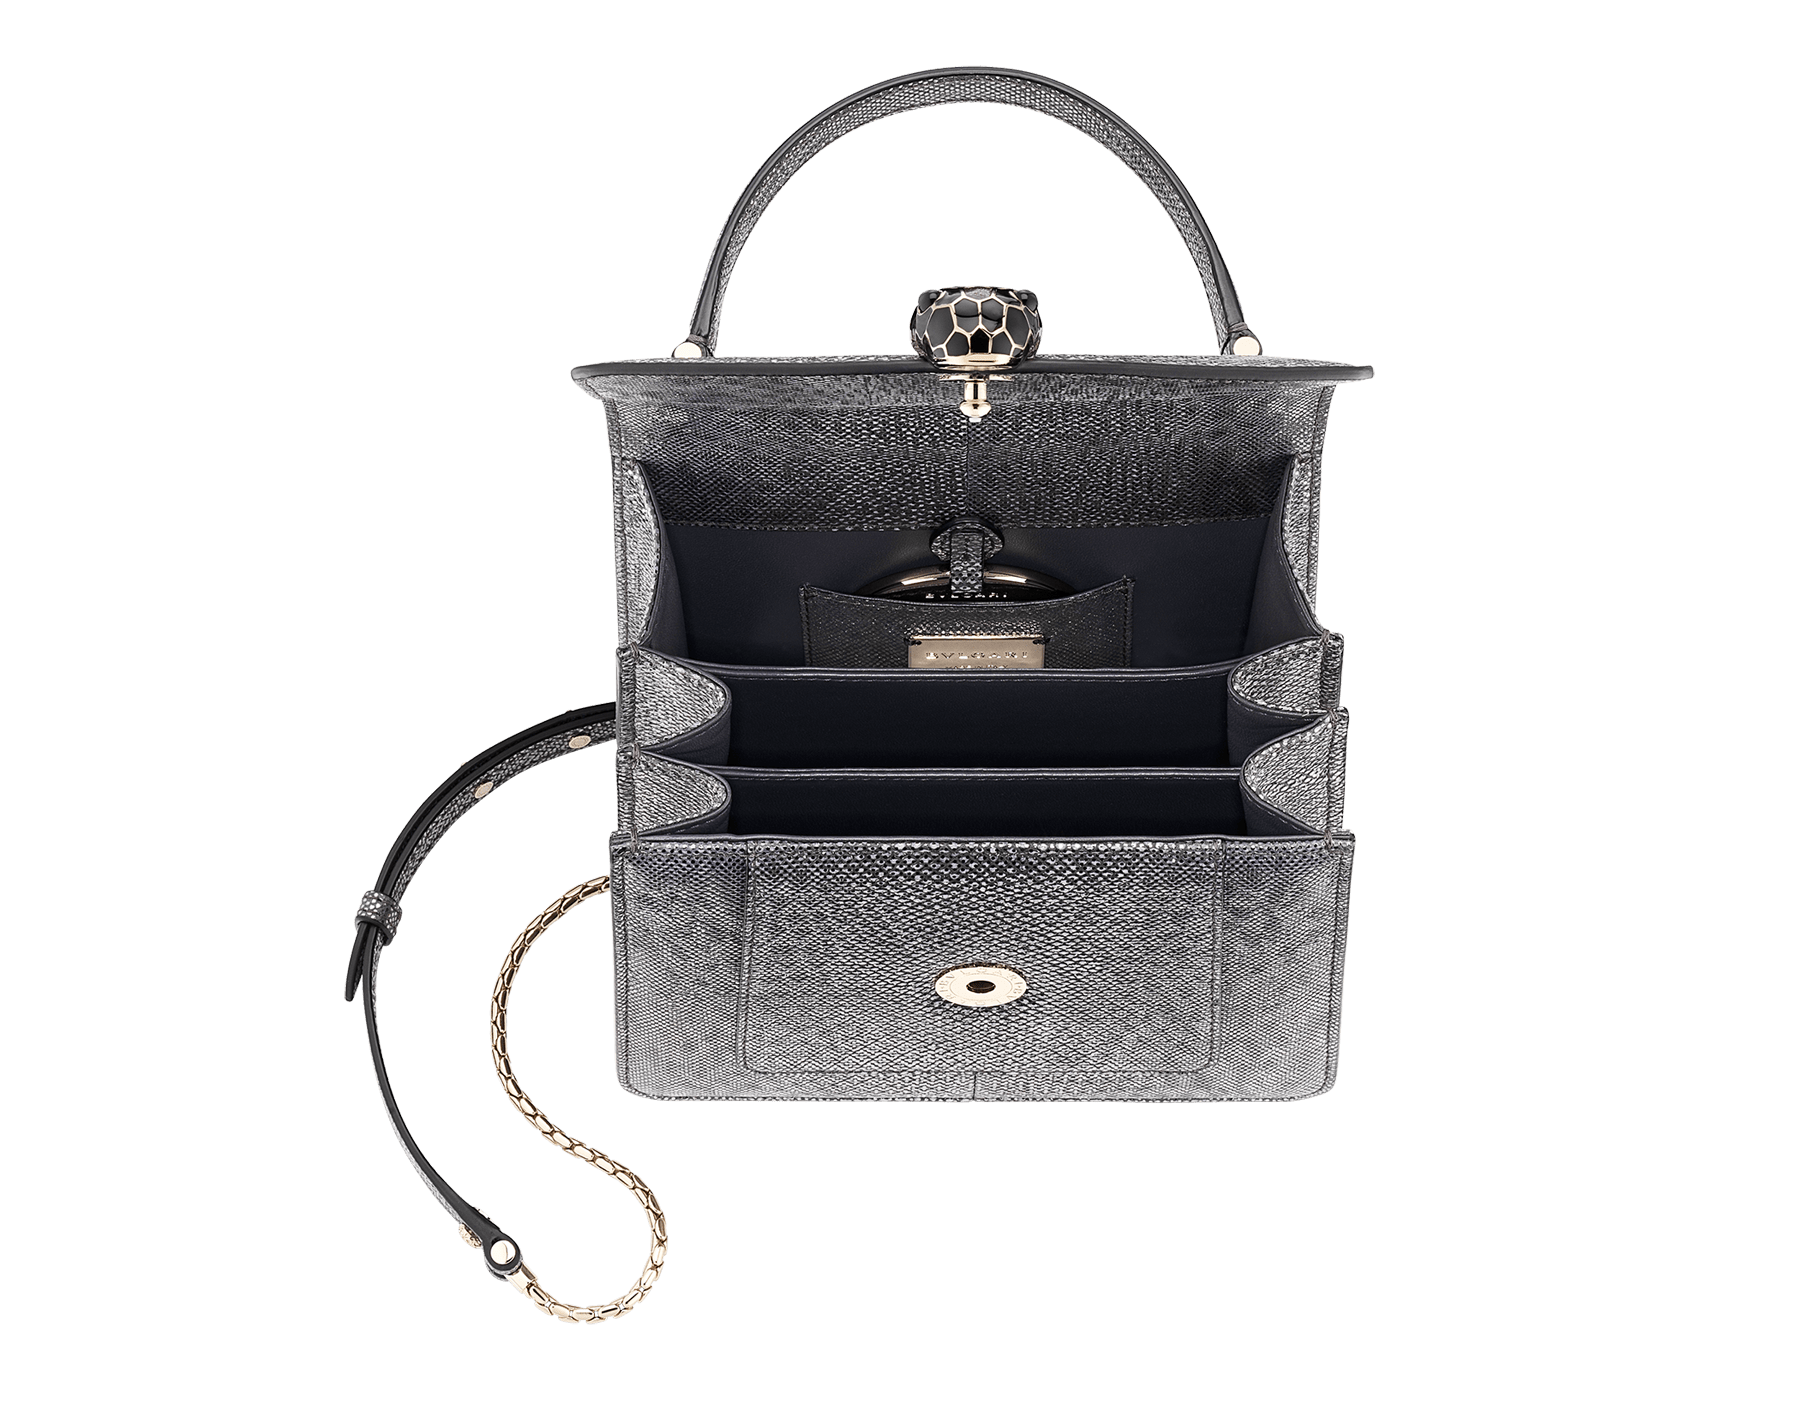 Serpenti Forever crossbody bag in forest emerald metallic karung skin. Snakehead closure in light gold plated bras decorated with shiny black and glitter forest emerald, and black onyx eyes. 752-MK image 4